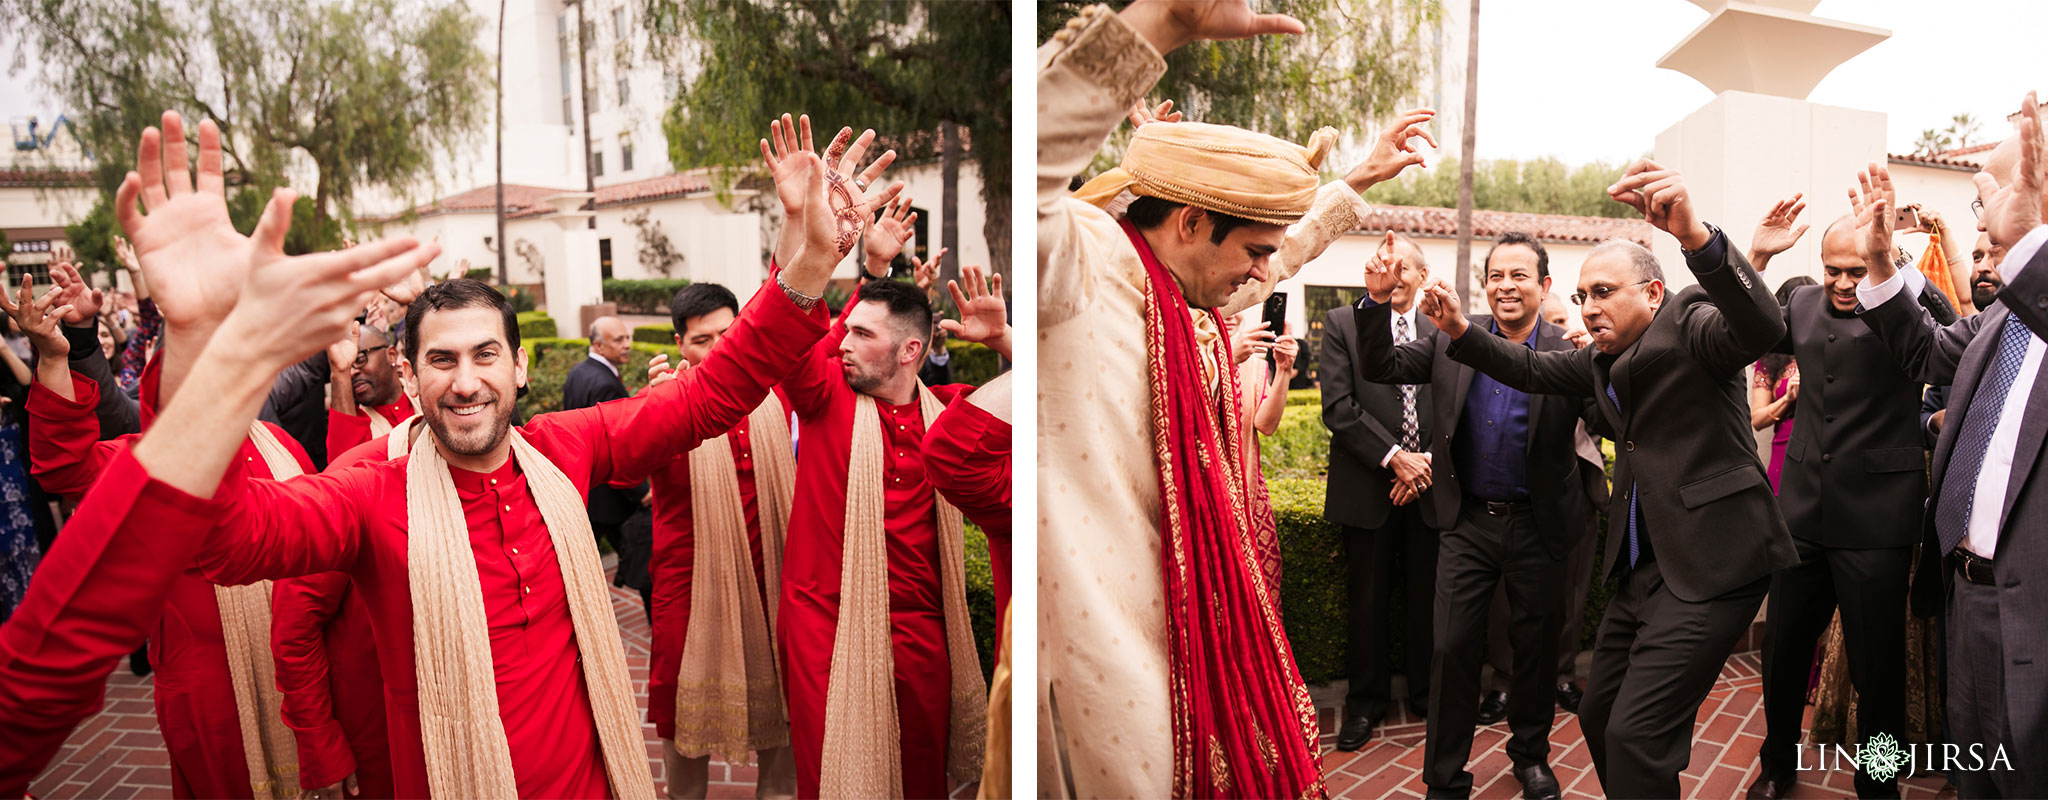 22 Union Station Los Angeles Indian Wedding Photography